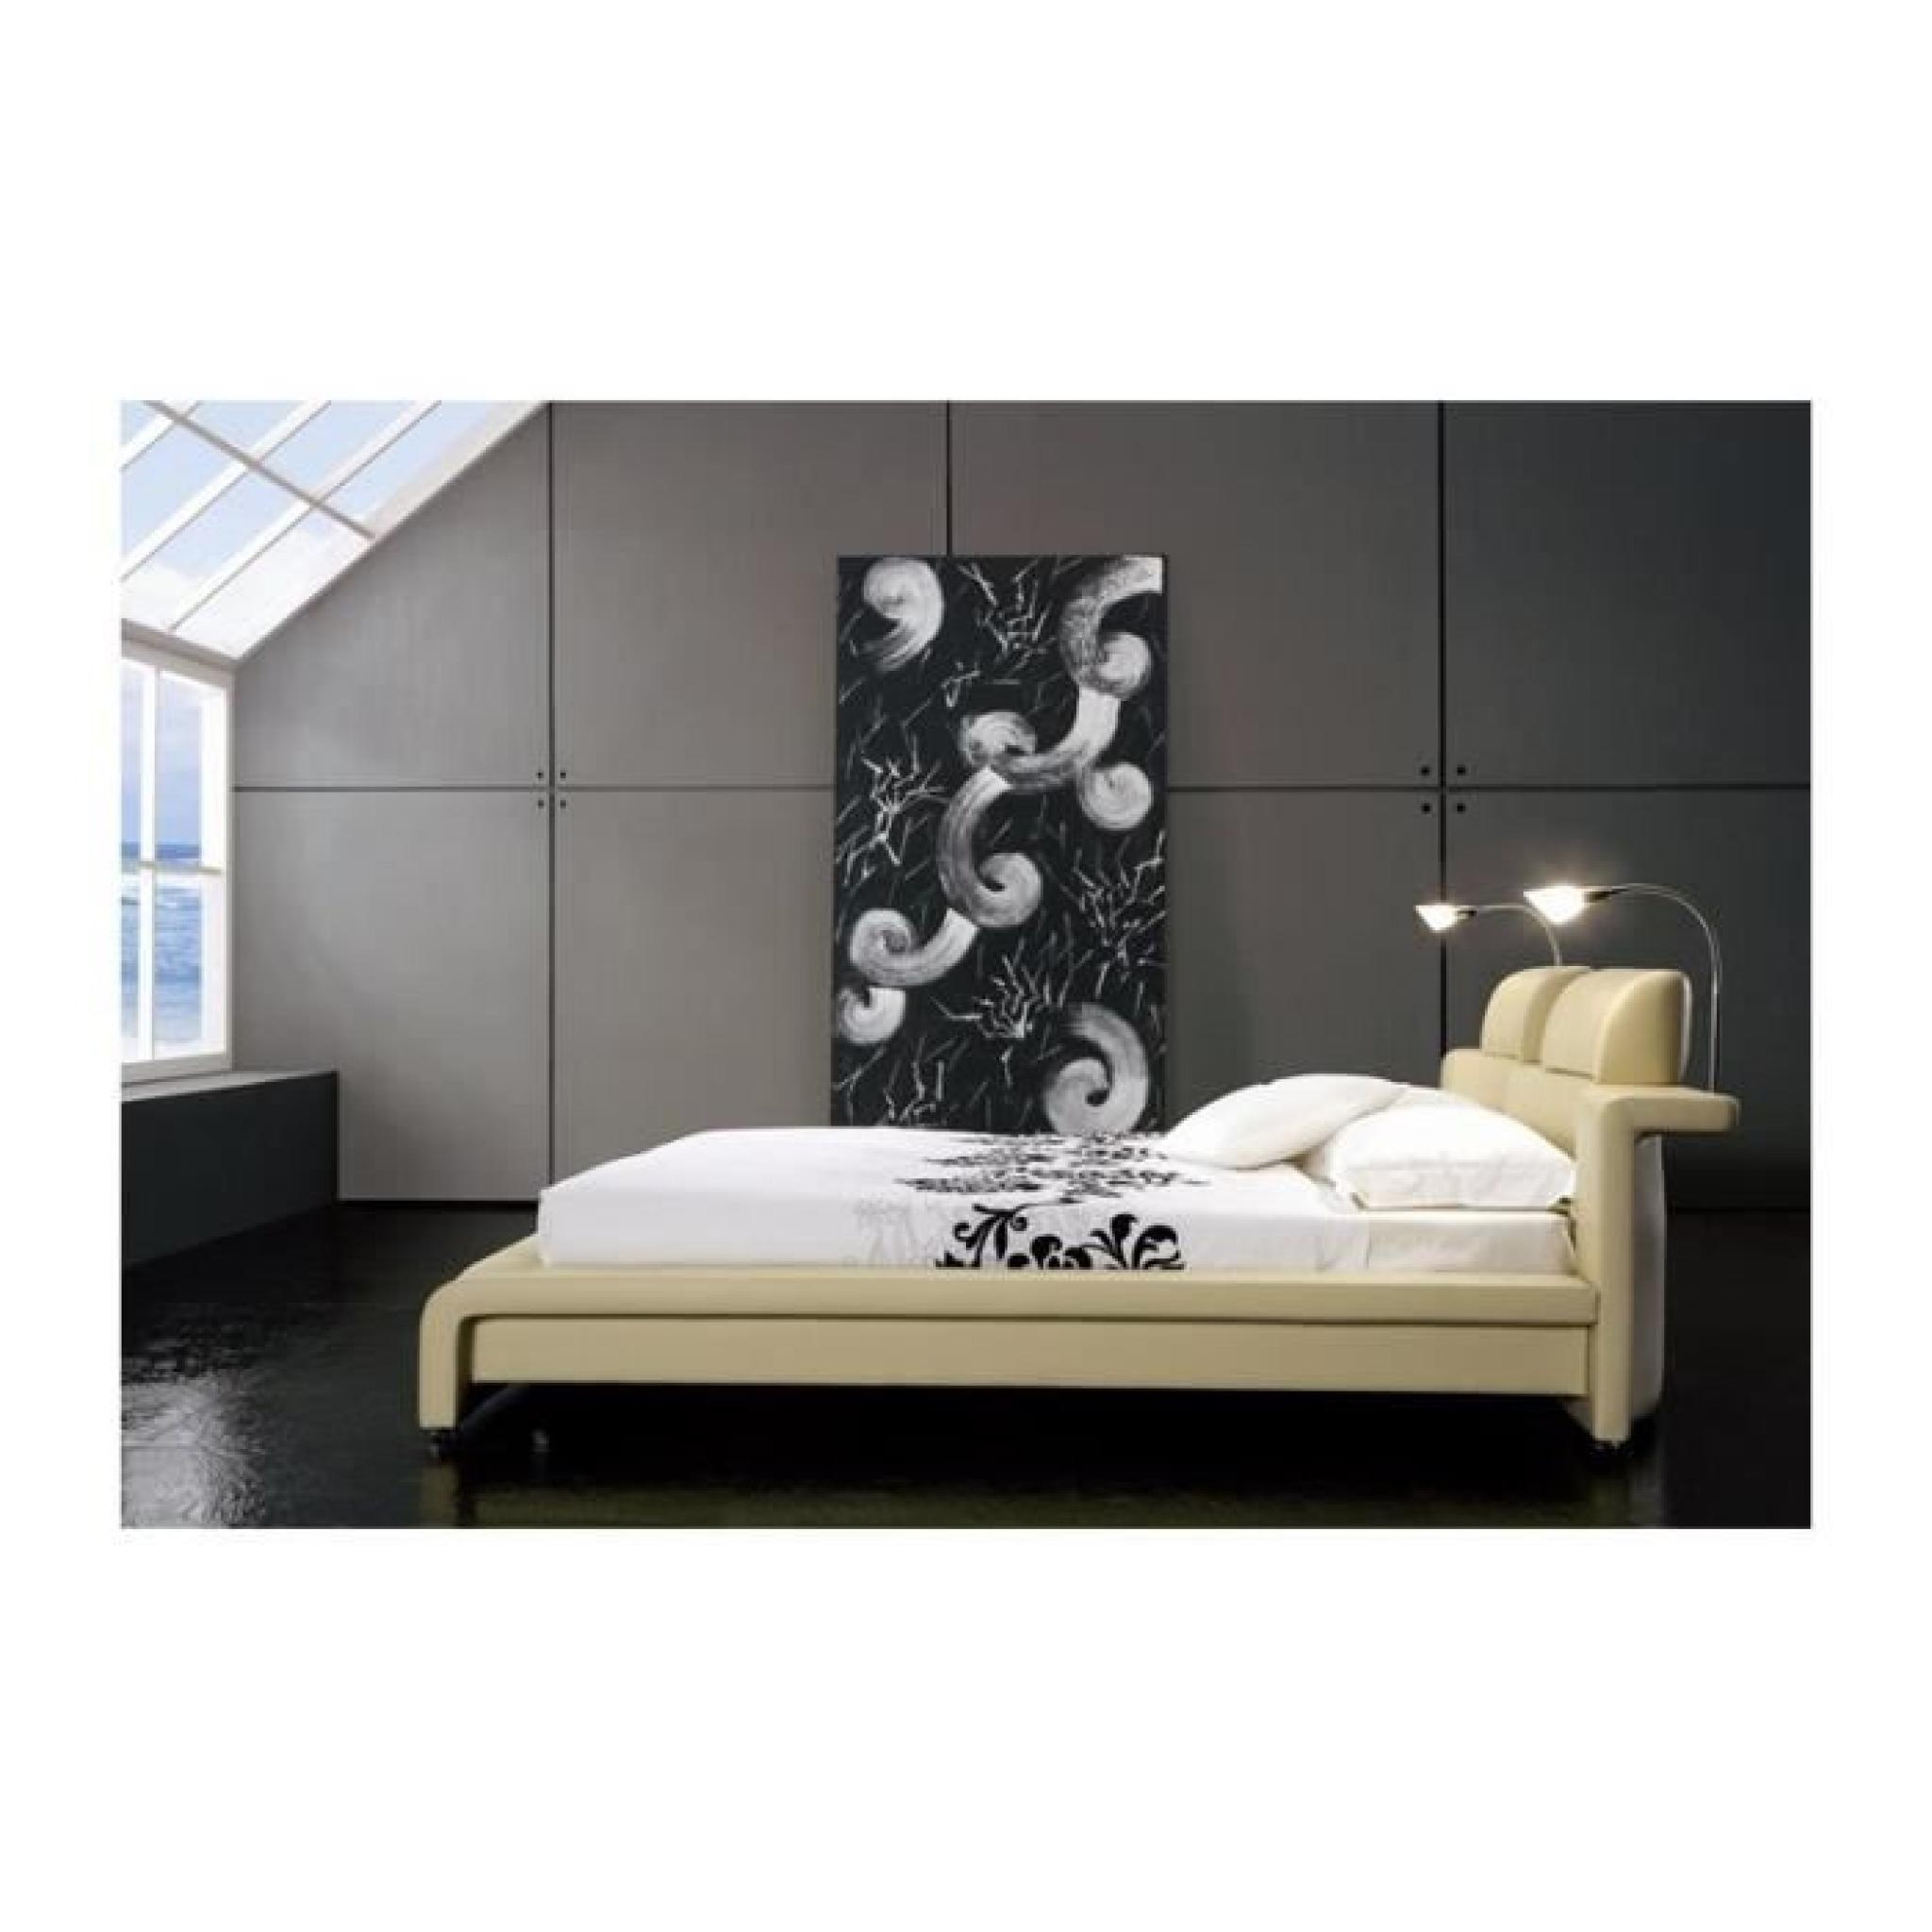 justhome classico beige lit rembourr en cuir cologique taille 140 x 200 cm achat vente lit. Black Bedroom Furniture Sets. Home Design Ideas